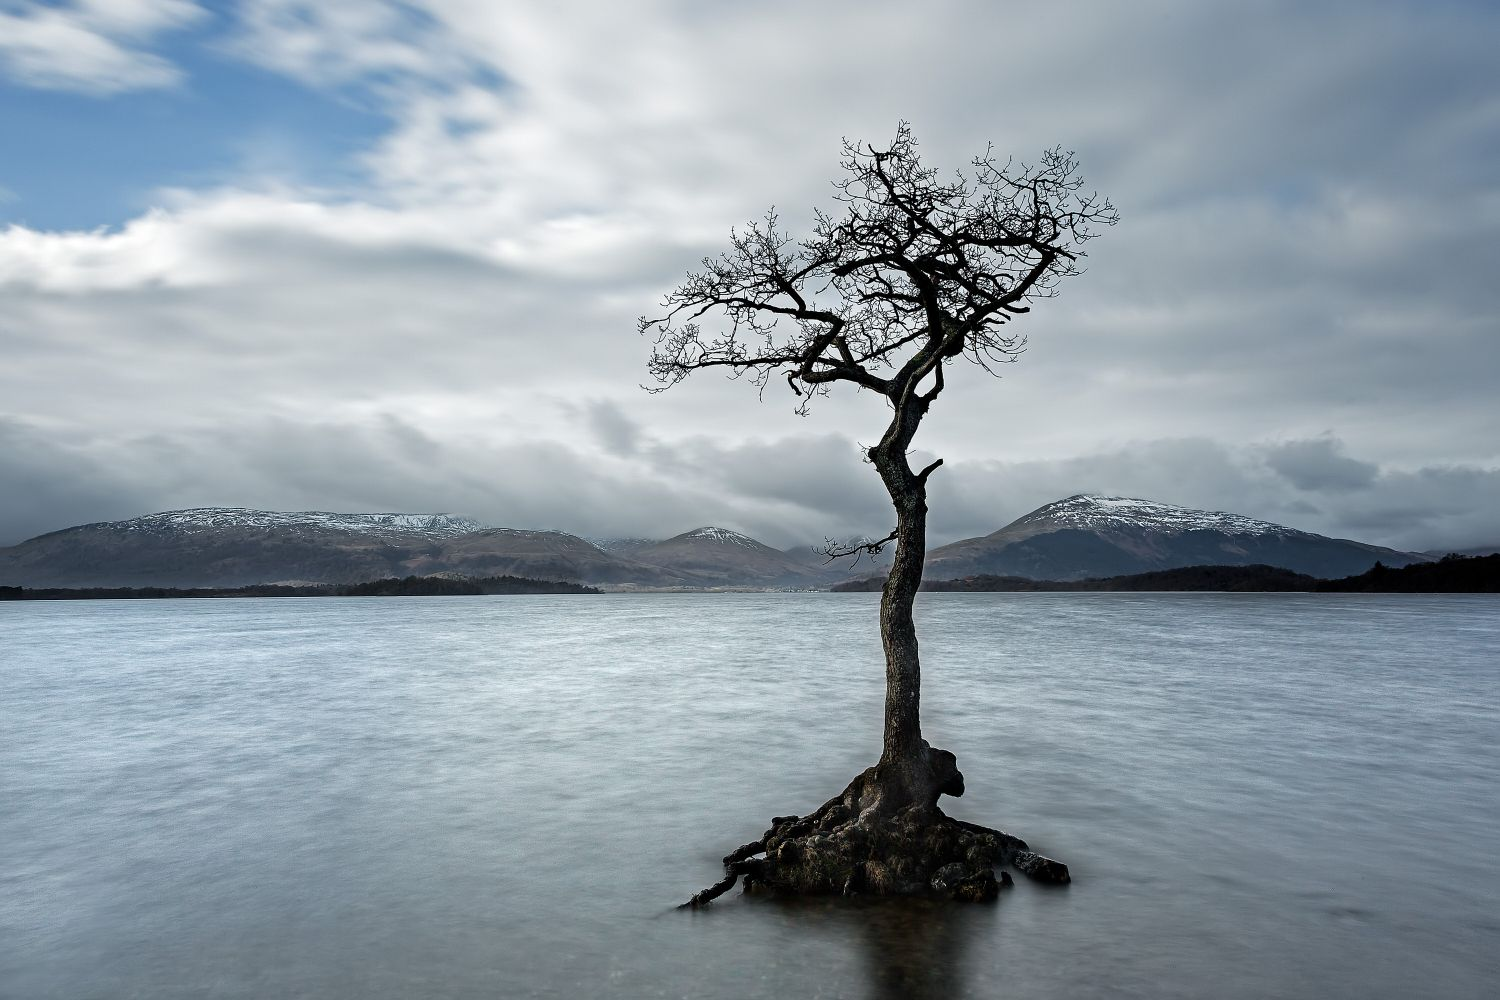 The lone tree at Milarrochy Bay, Loch Lomond